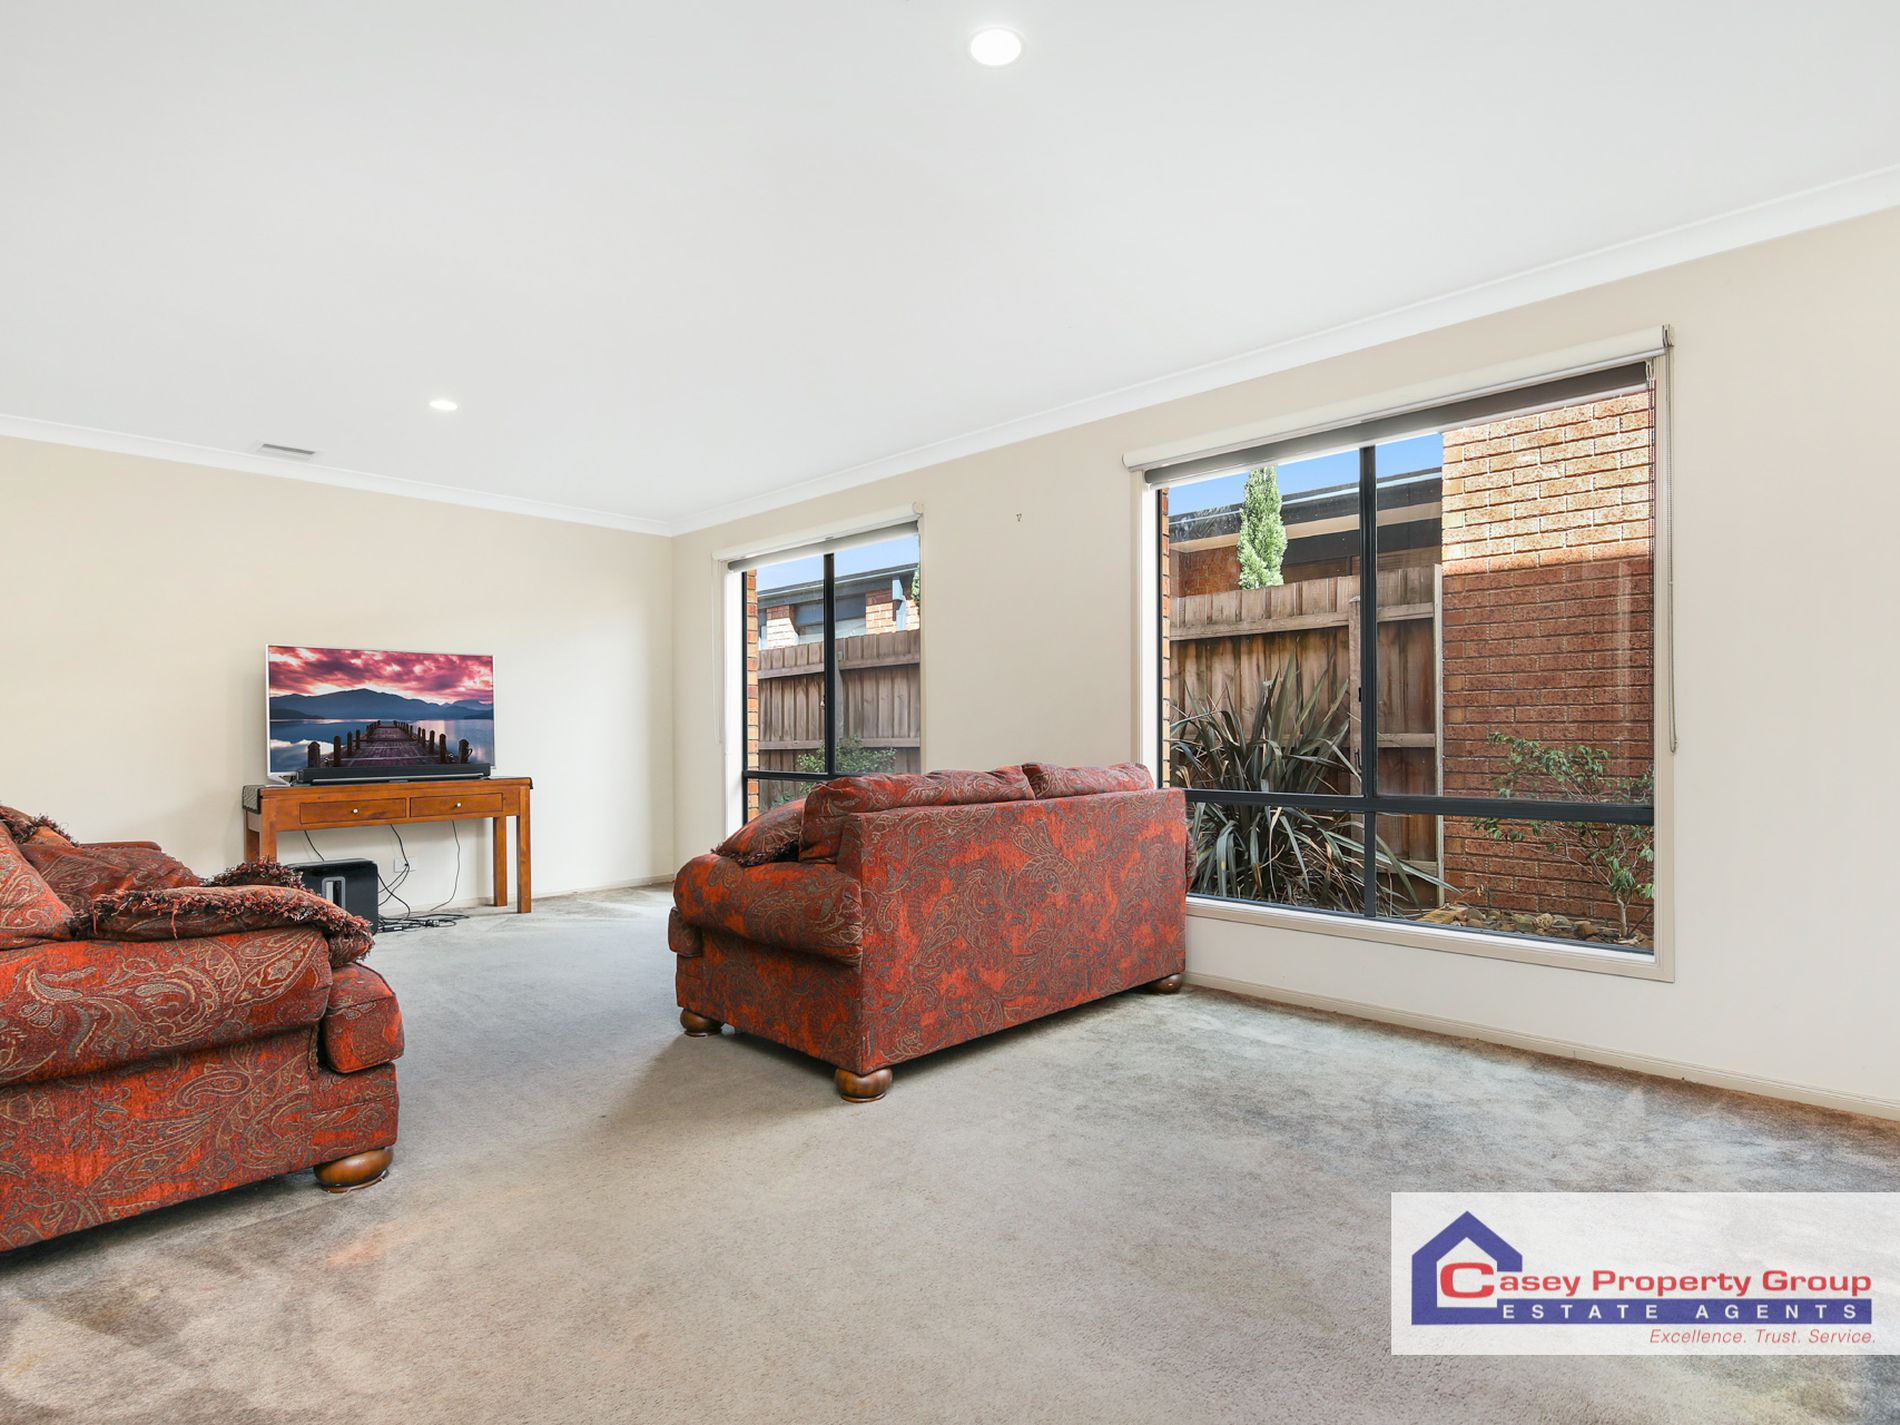 8 St Remy Court, Narre Warren South